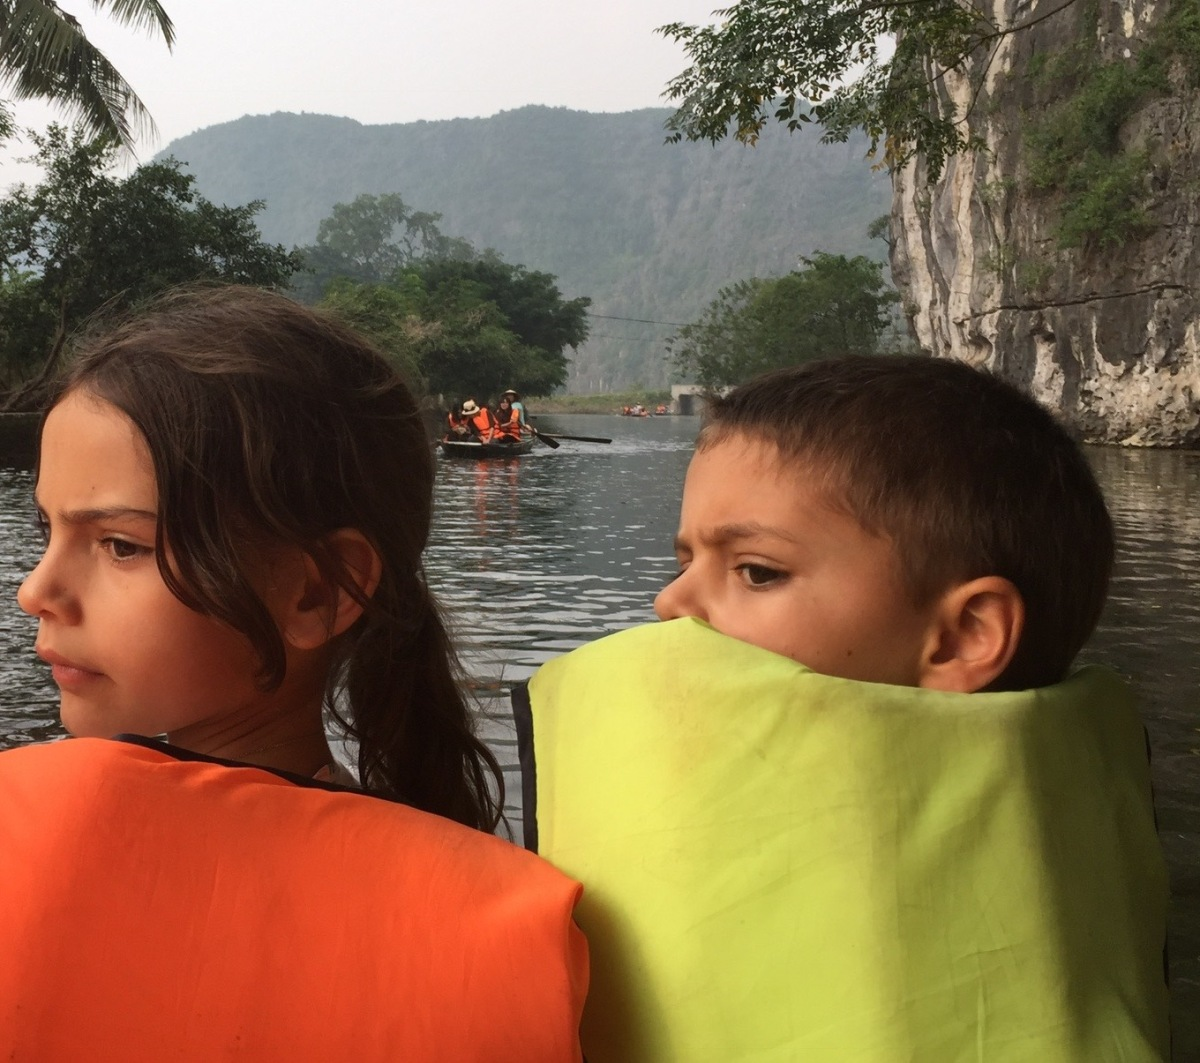 Family haven: escaping Hanoi pollution in Ninh Binh